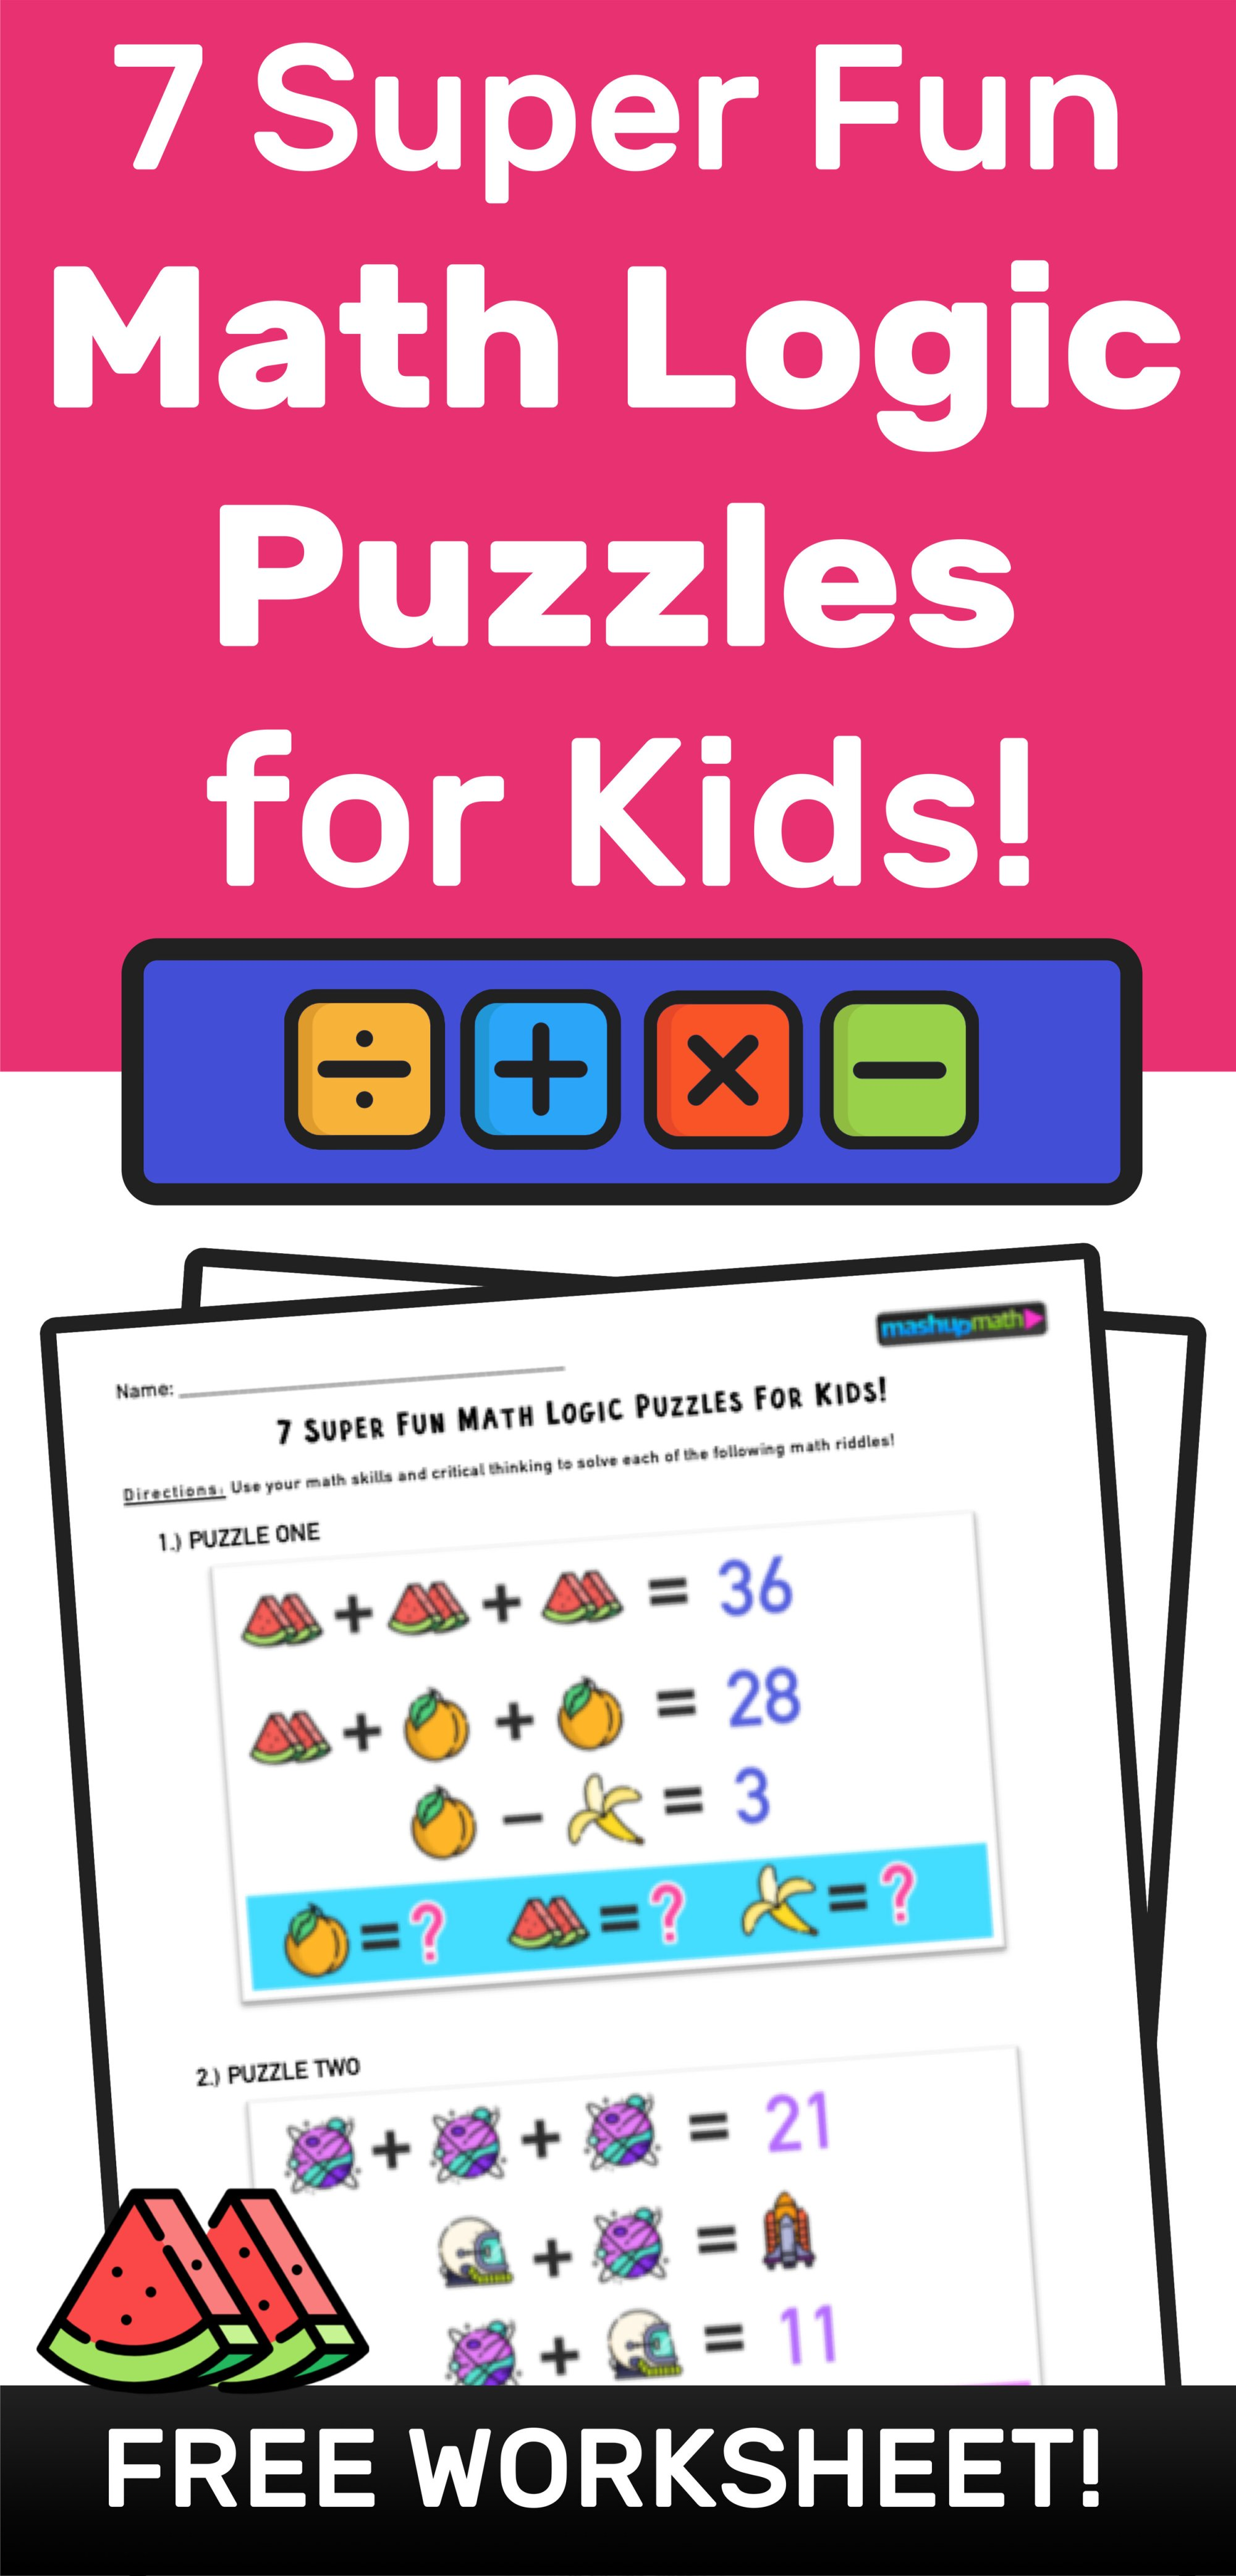 hight resolution of 7 Super Fun Math Logic Puzzles for Kids! — Mashup Math